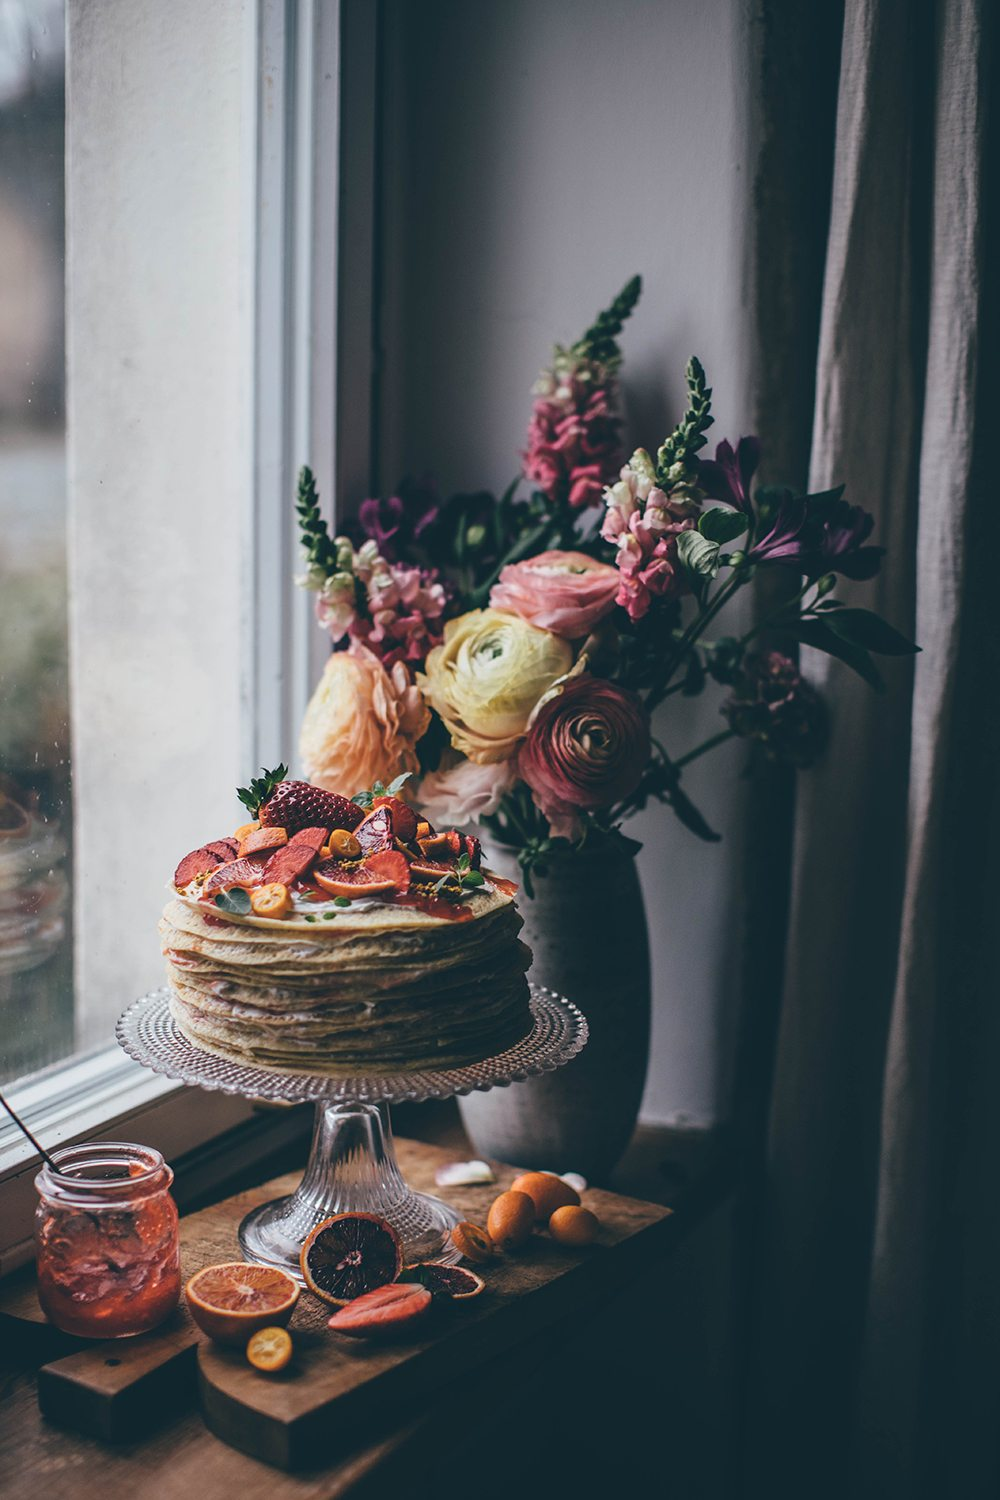 Blood Orange Crepe Cake with Ginger by Our Food Stories